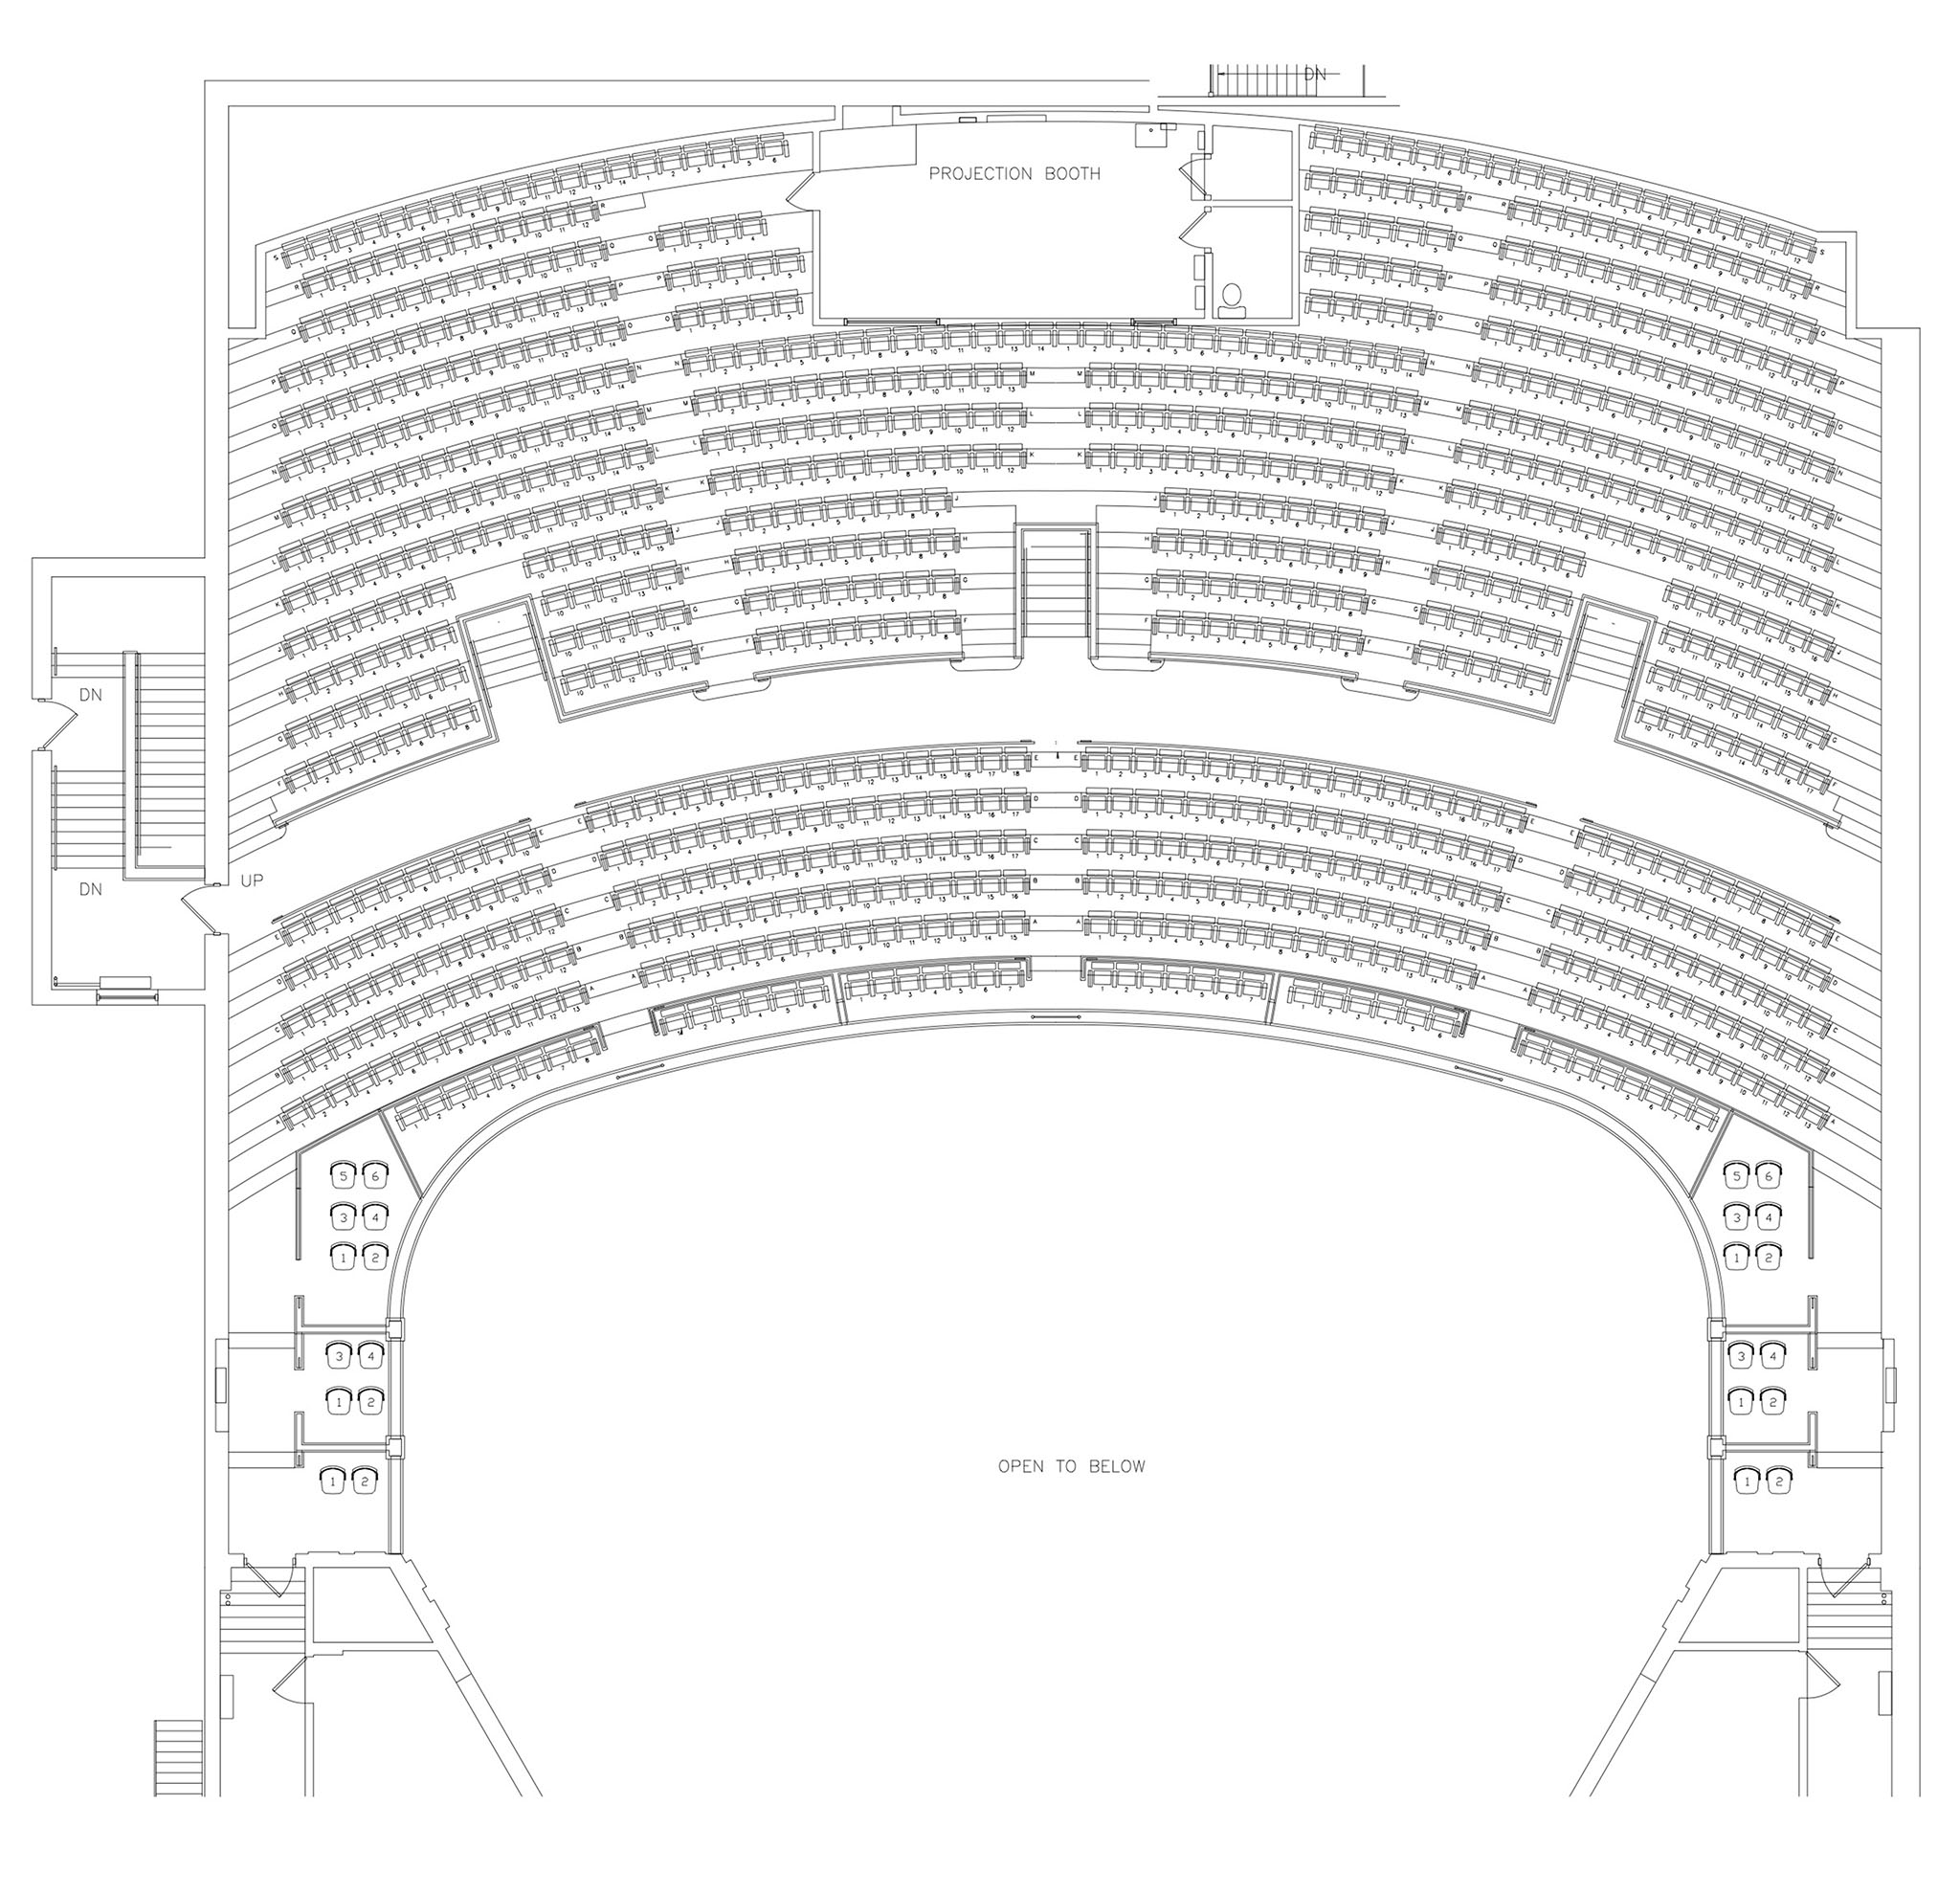 ORCHESTRA PIT SEATING 40 MAIN FLOOR SEATING 1360 BALCONY SEATING 915TOTAL CAPACITY 2315